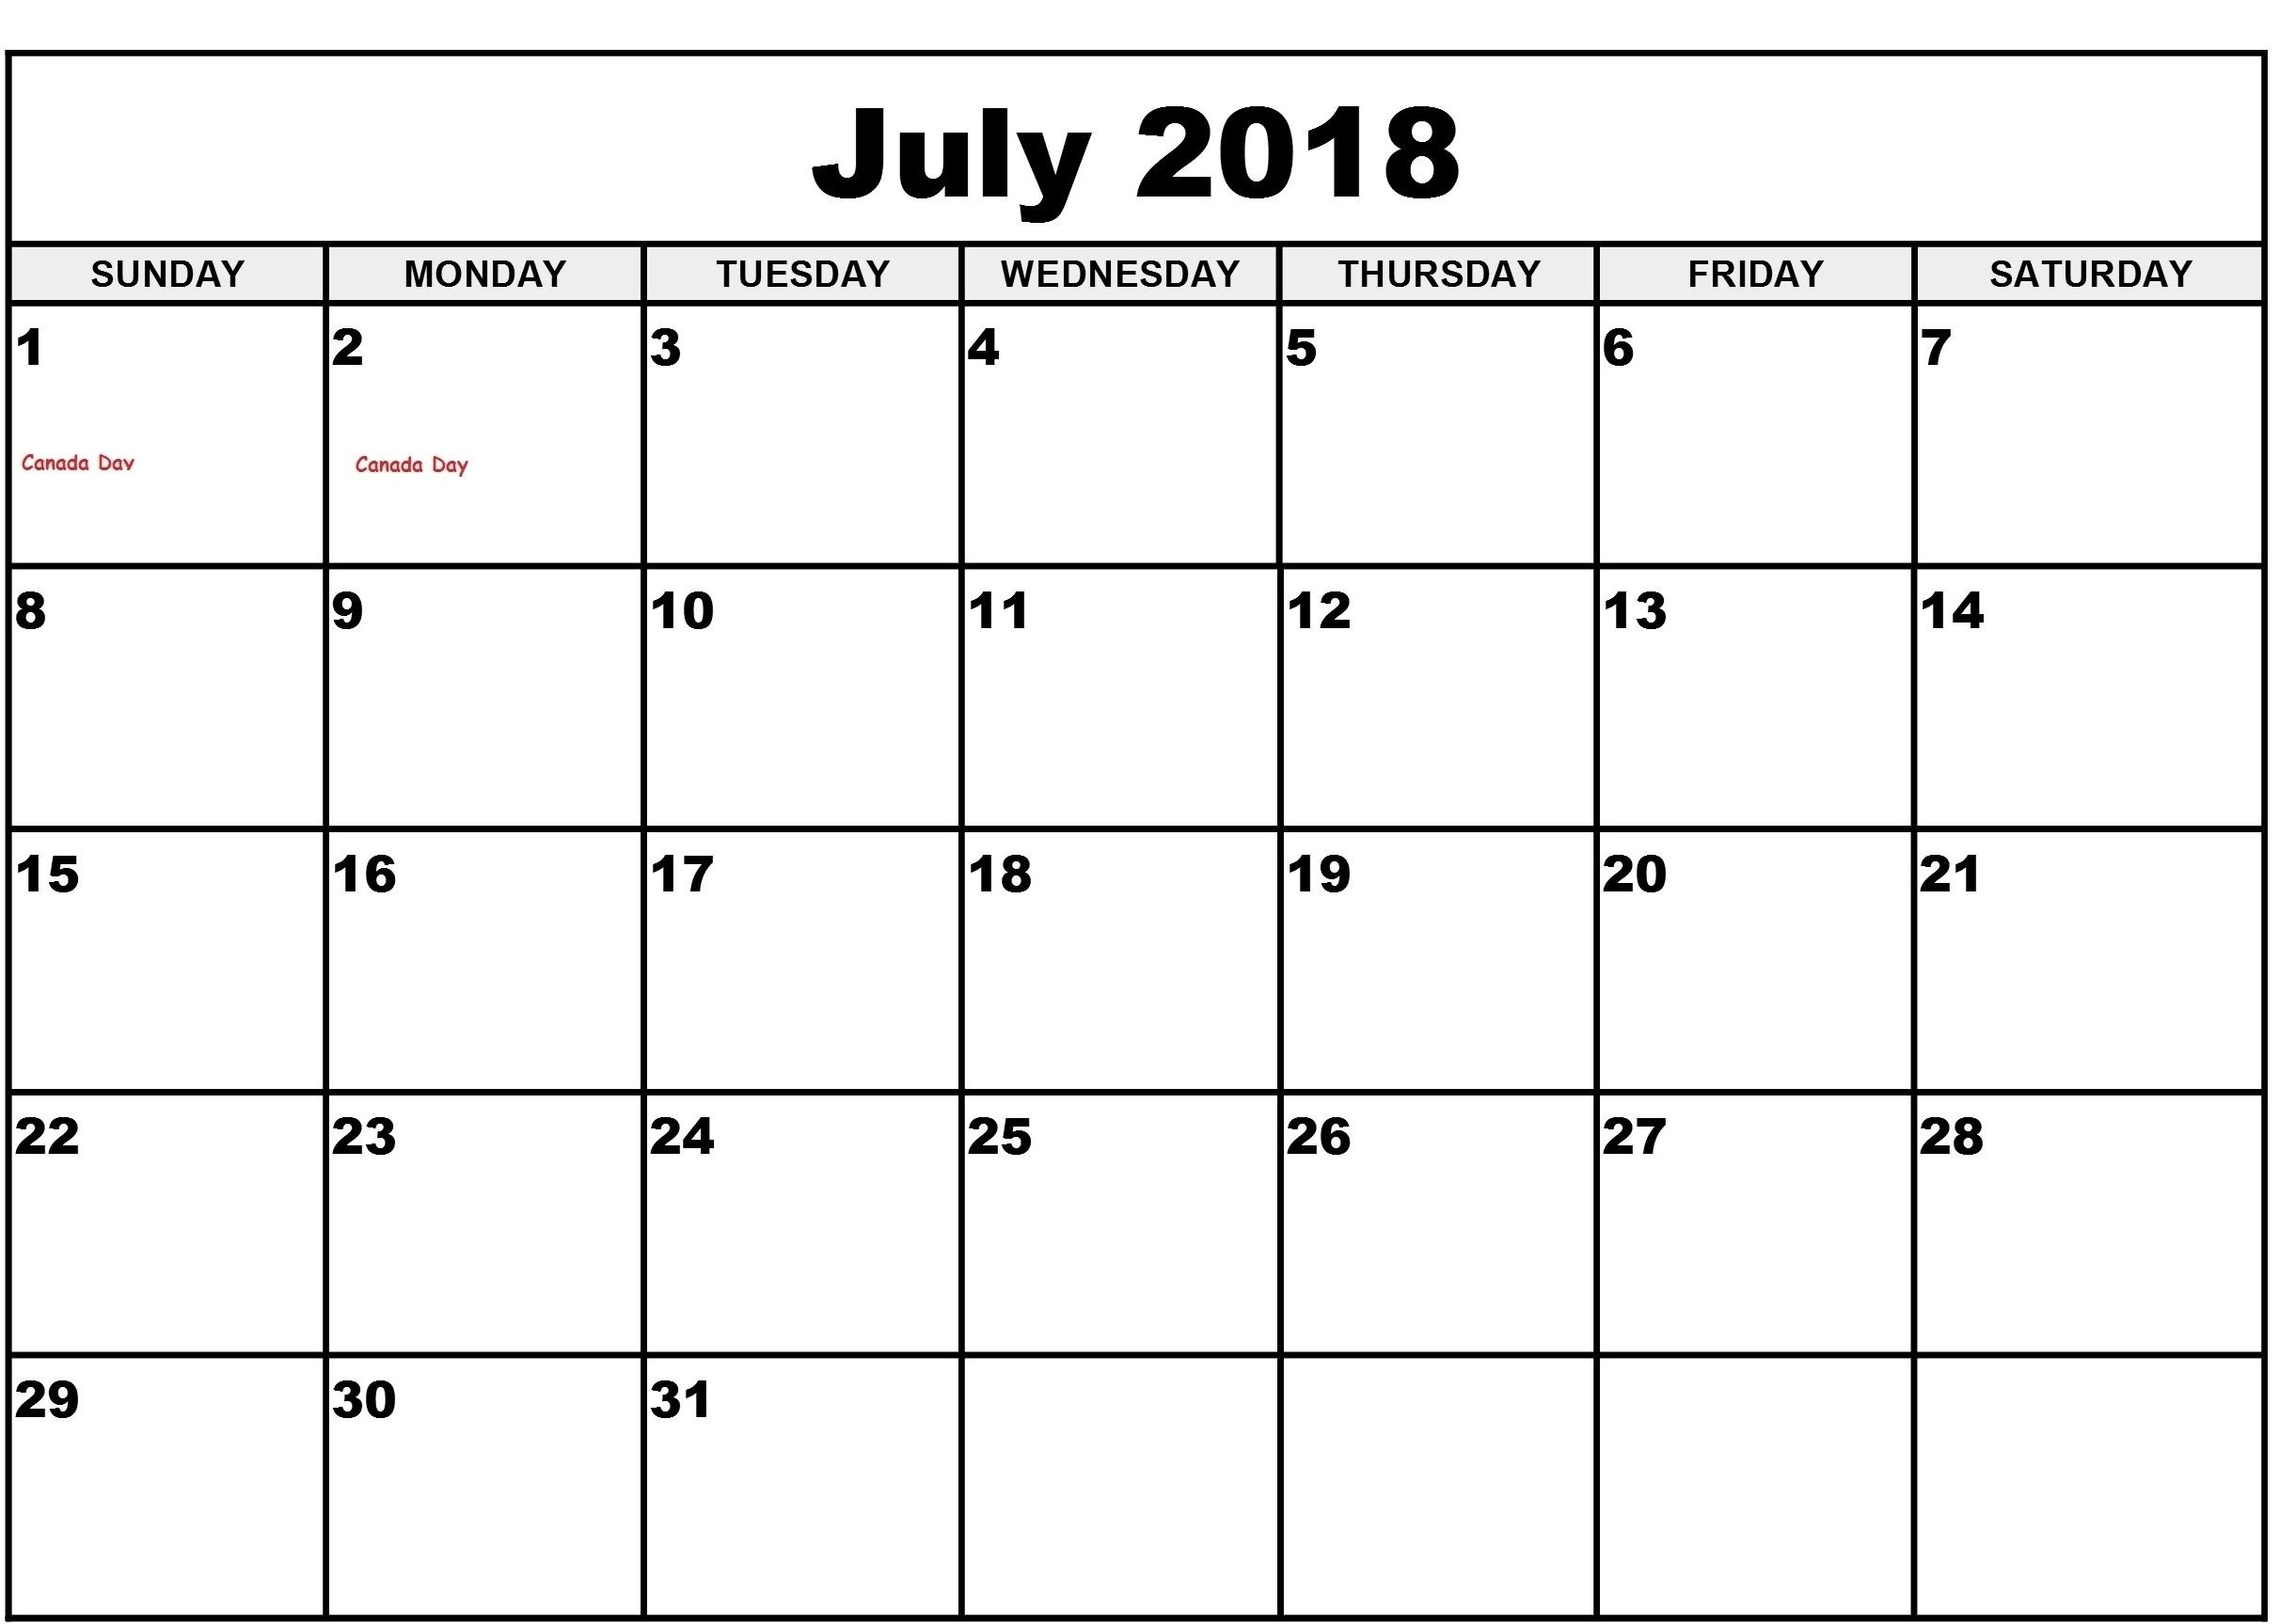 Catch June 2021 Calendar Hourly Slots Editable